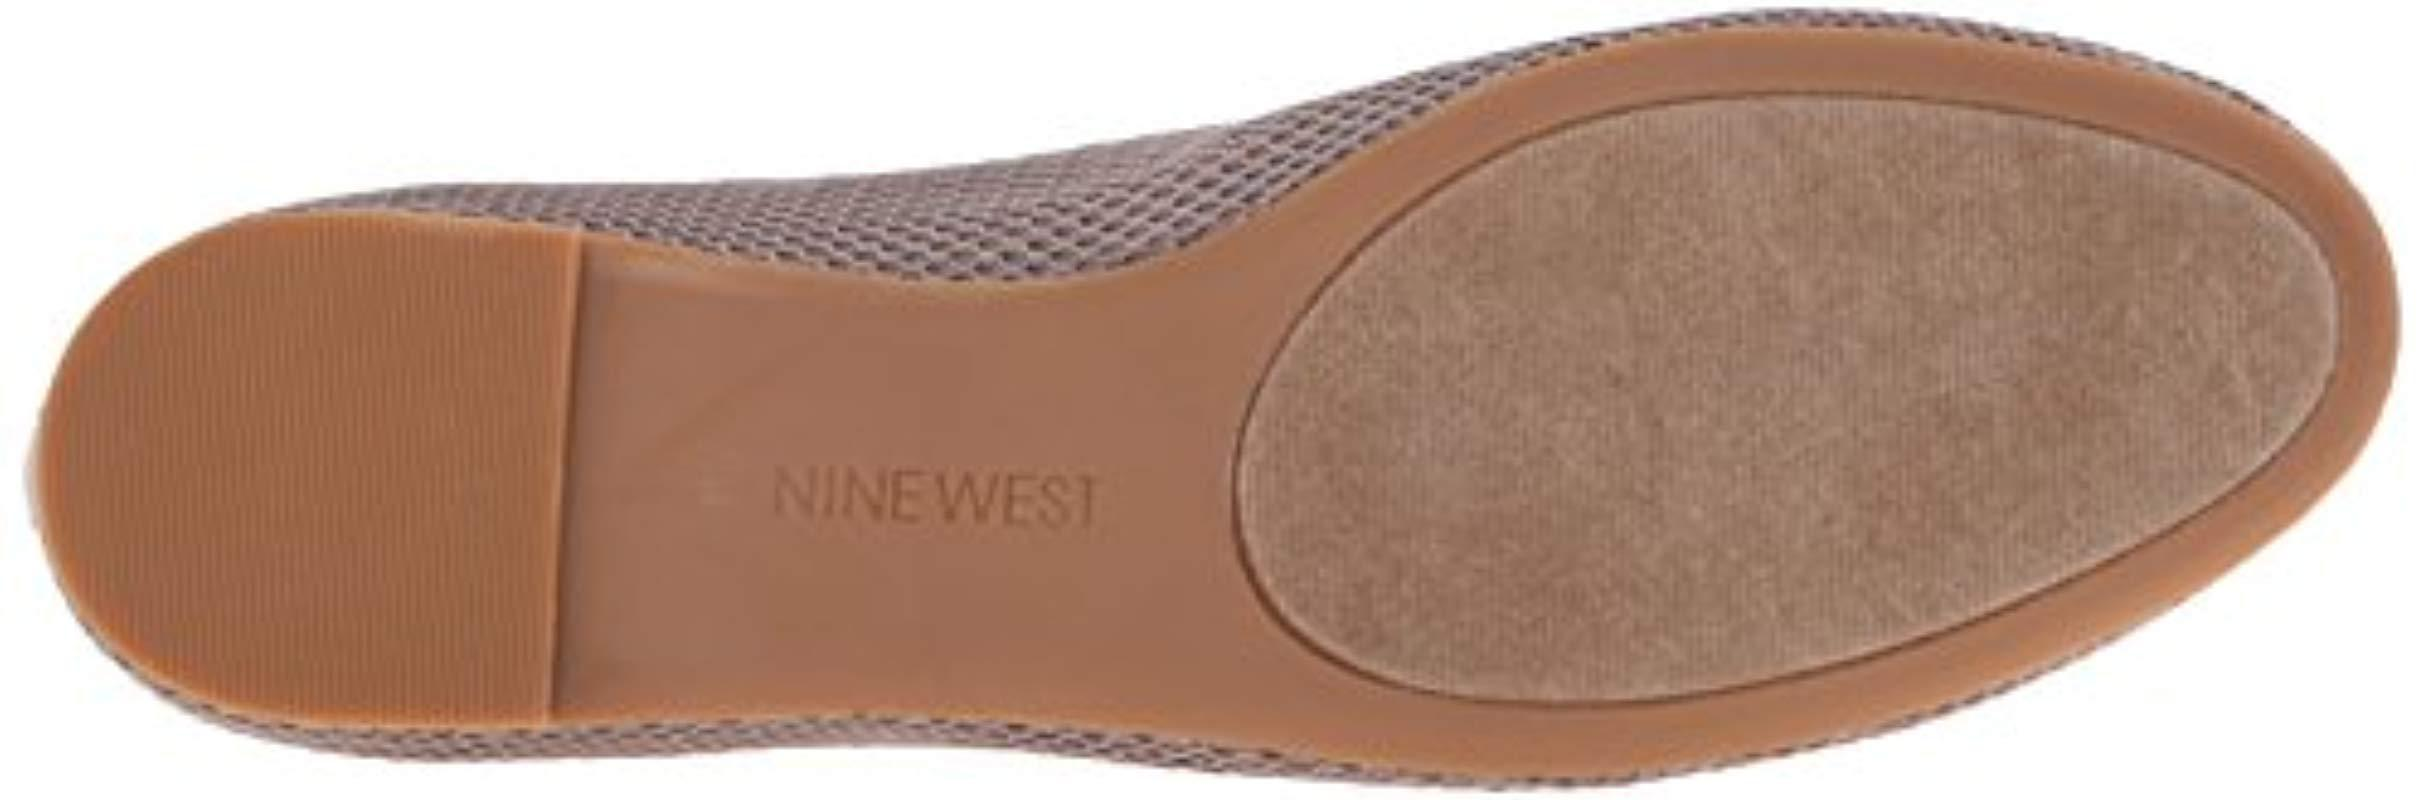 West Save Fabric Gray Flat Nine Lyst Adorabl Ballet In 5xvWR8